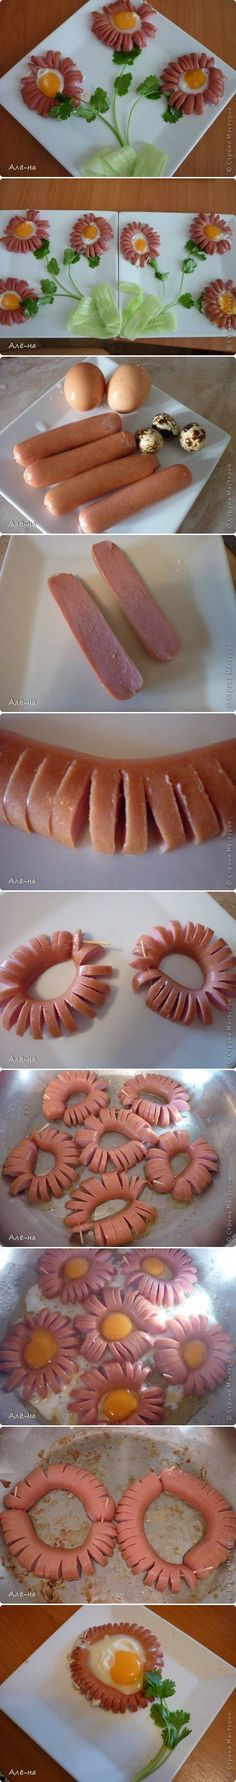 Food Art Plate - Hot Dog Daisy | iCreativeIdeas.com Like Us on Facebook ==> https://www.facebook.com/icreativeideas